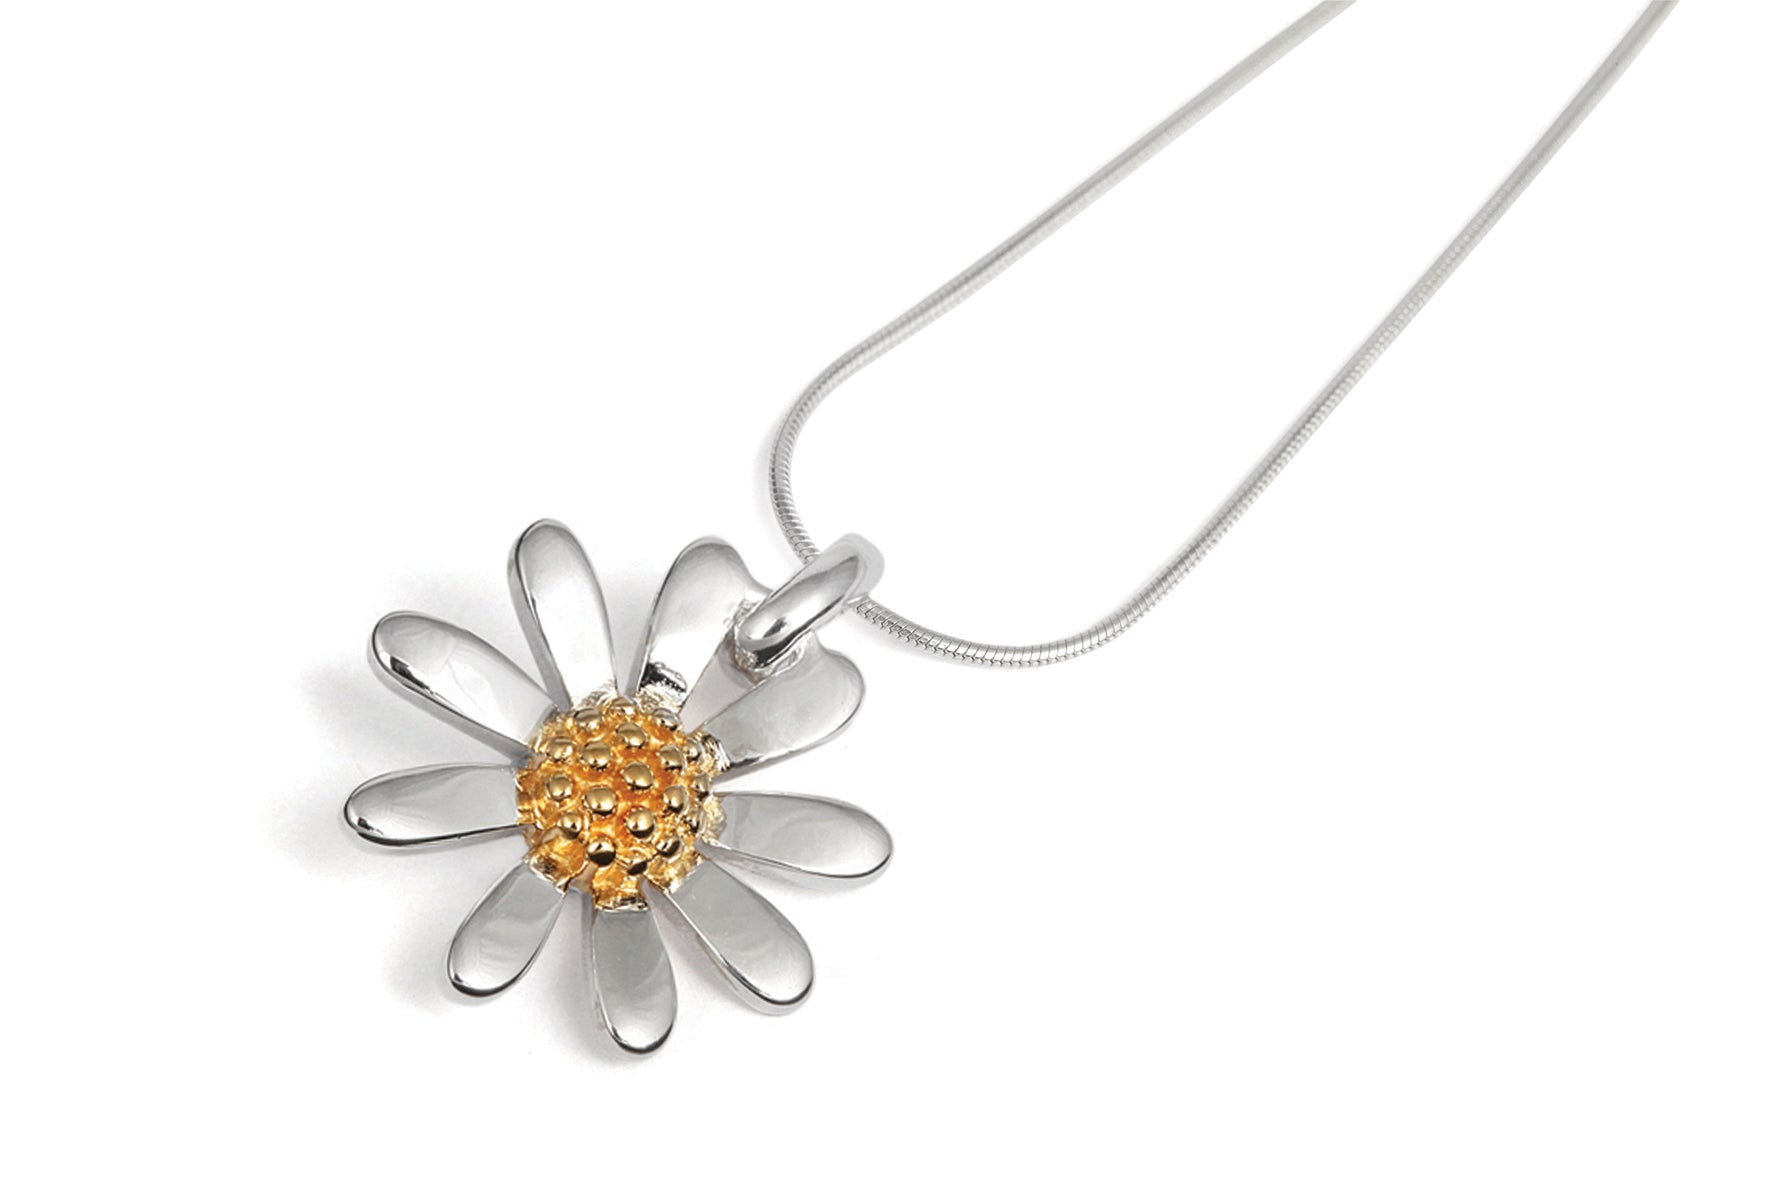 Silver Daisy Pendant and Chain